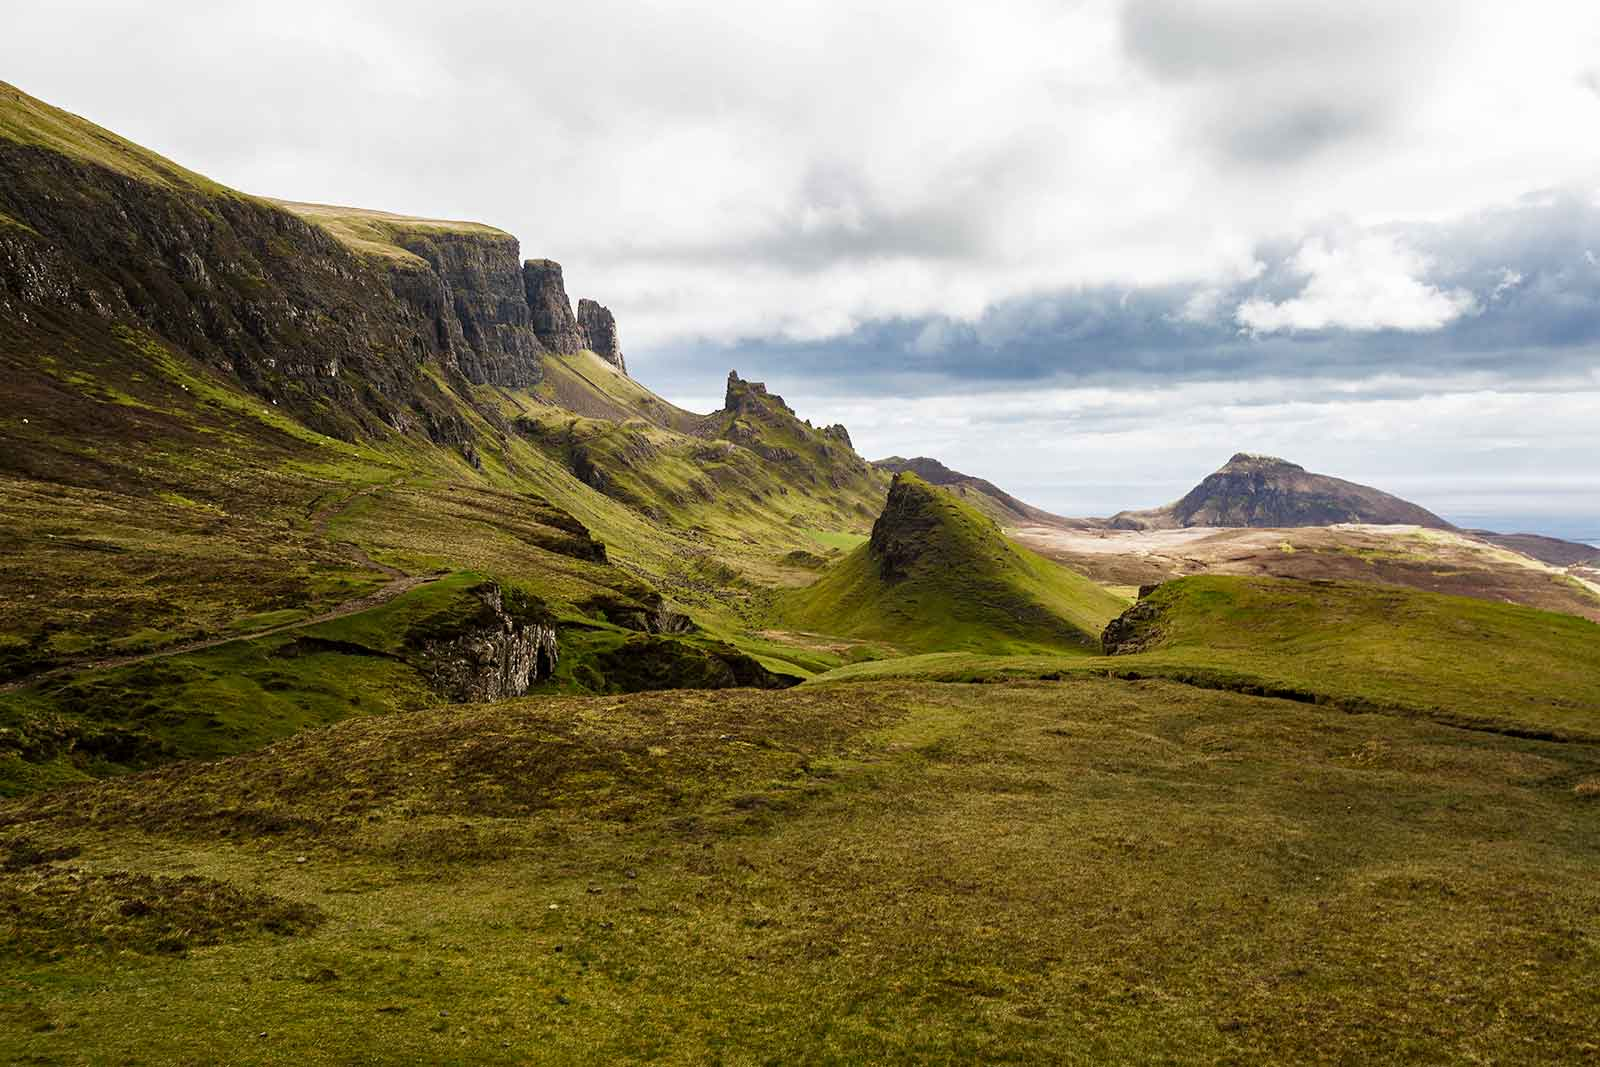 One of the most beautiful hikes in the world, with the most stunning landscape: The Quiraing in Scotland.